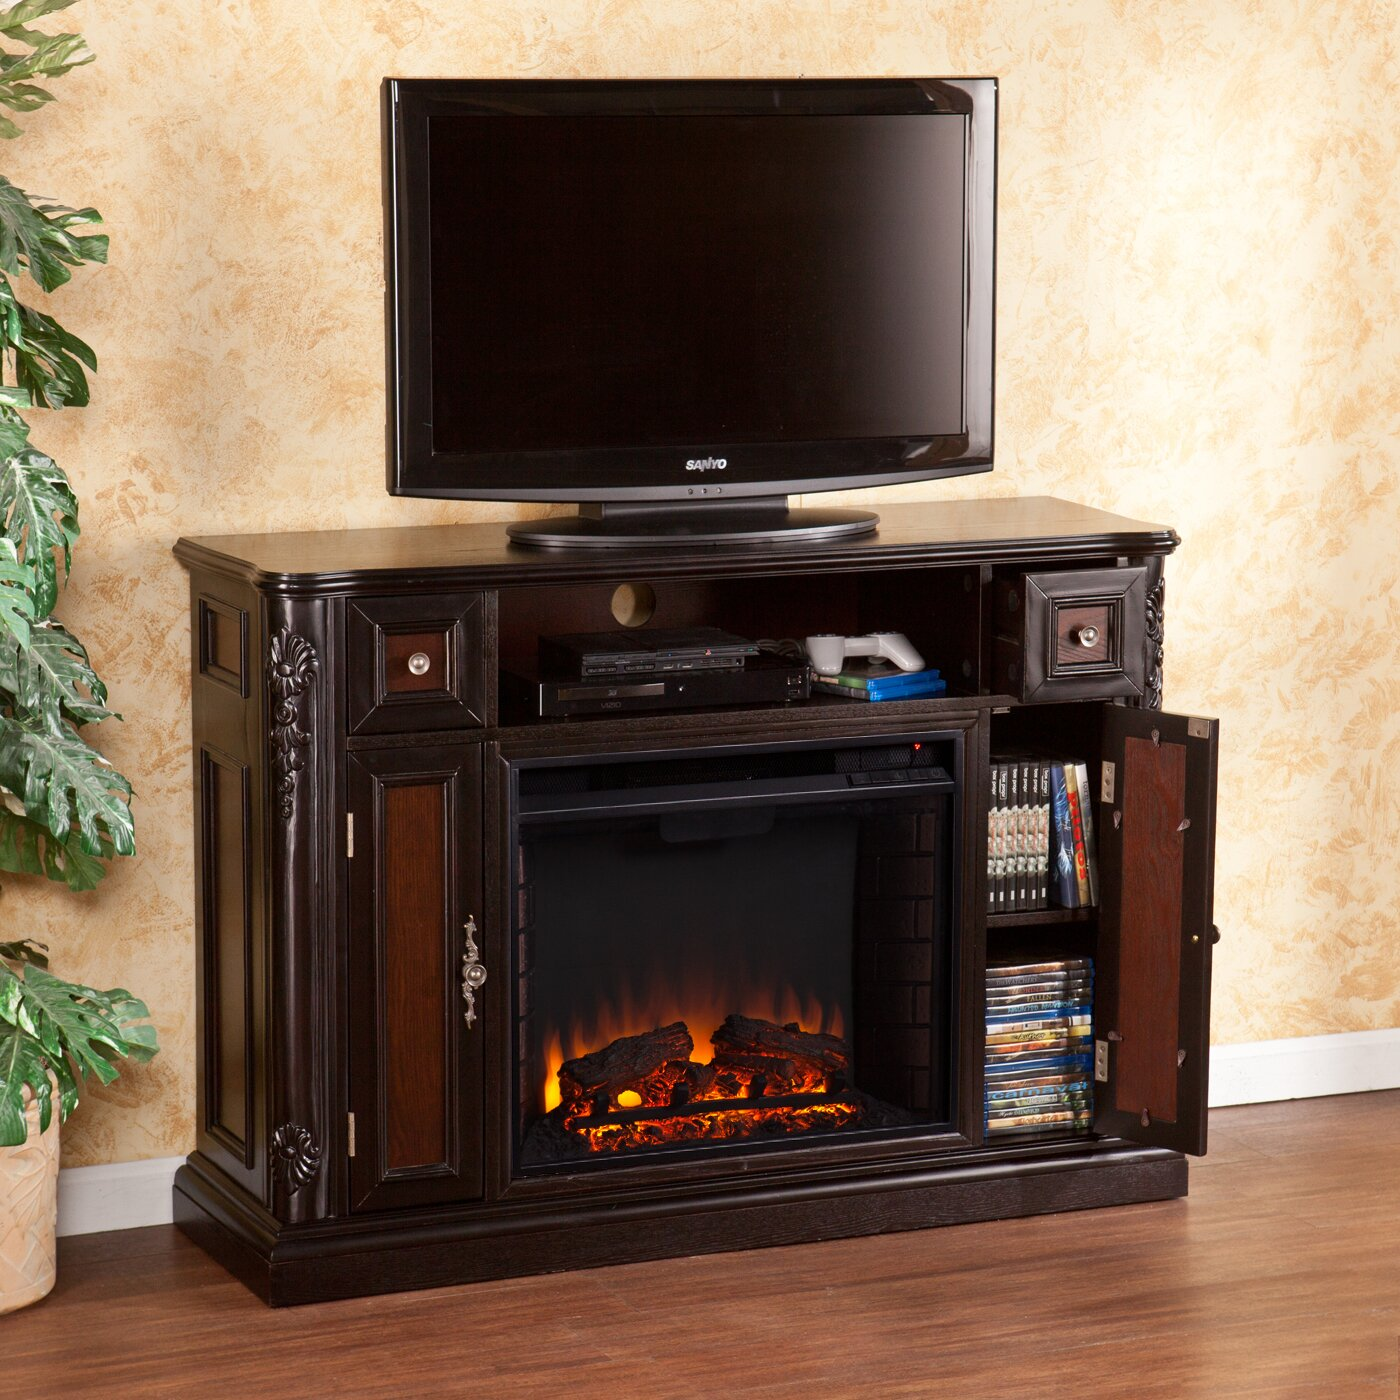 Wildon Home ® Gibbs TV Stand with Electric Fireplace - Wildon Home ® Gibbs TV Stand With Electric Fireplace & Reviews